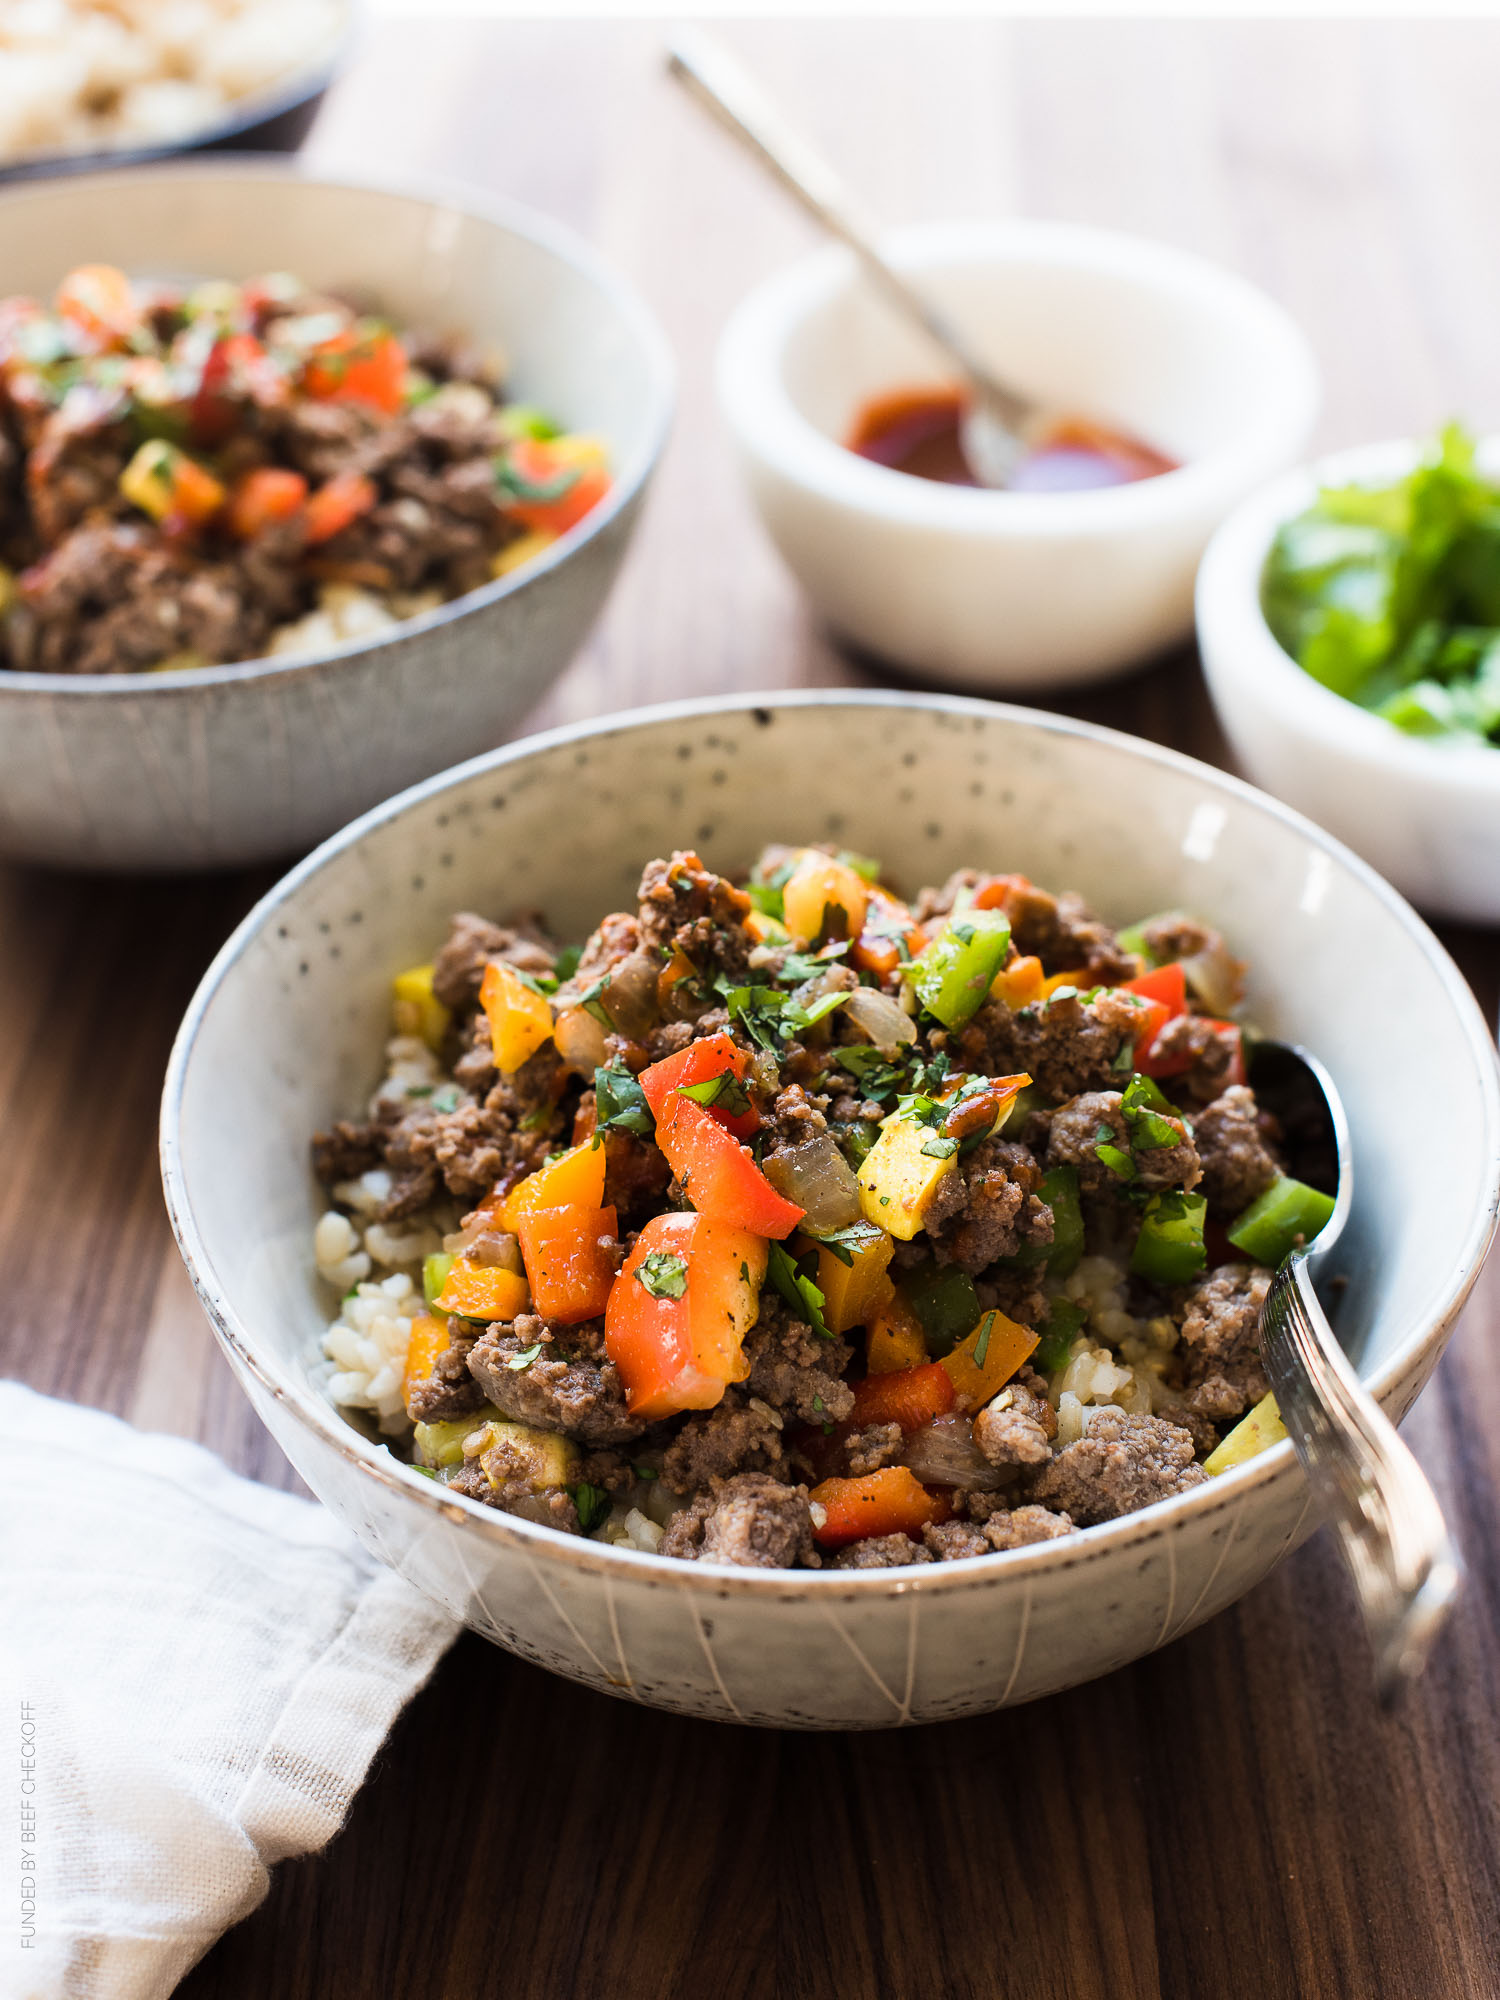 Cool Mom Eats weekly meal plan: Filipino-Style Picadillo Bowls